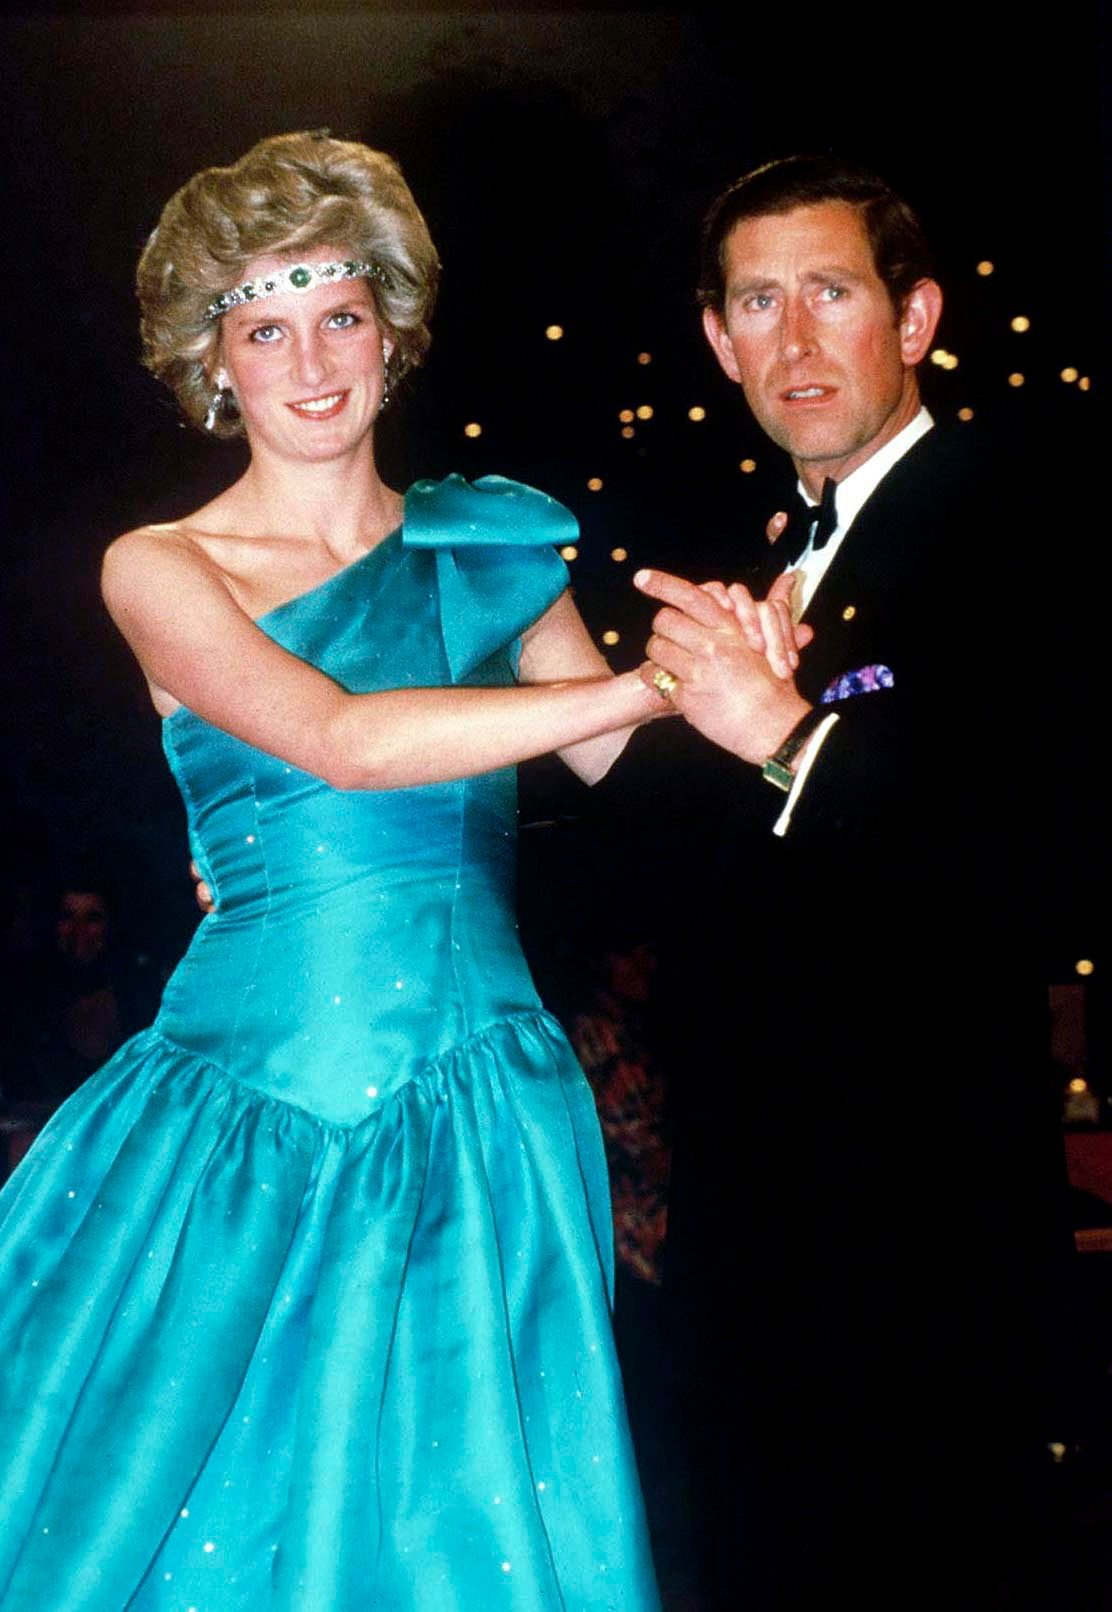 Prince Charles dancing with Princess Diana, In Melbourne, at their Official Tour Of Australia on October 01, 1985 | Photo: Getty Images